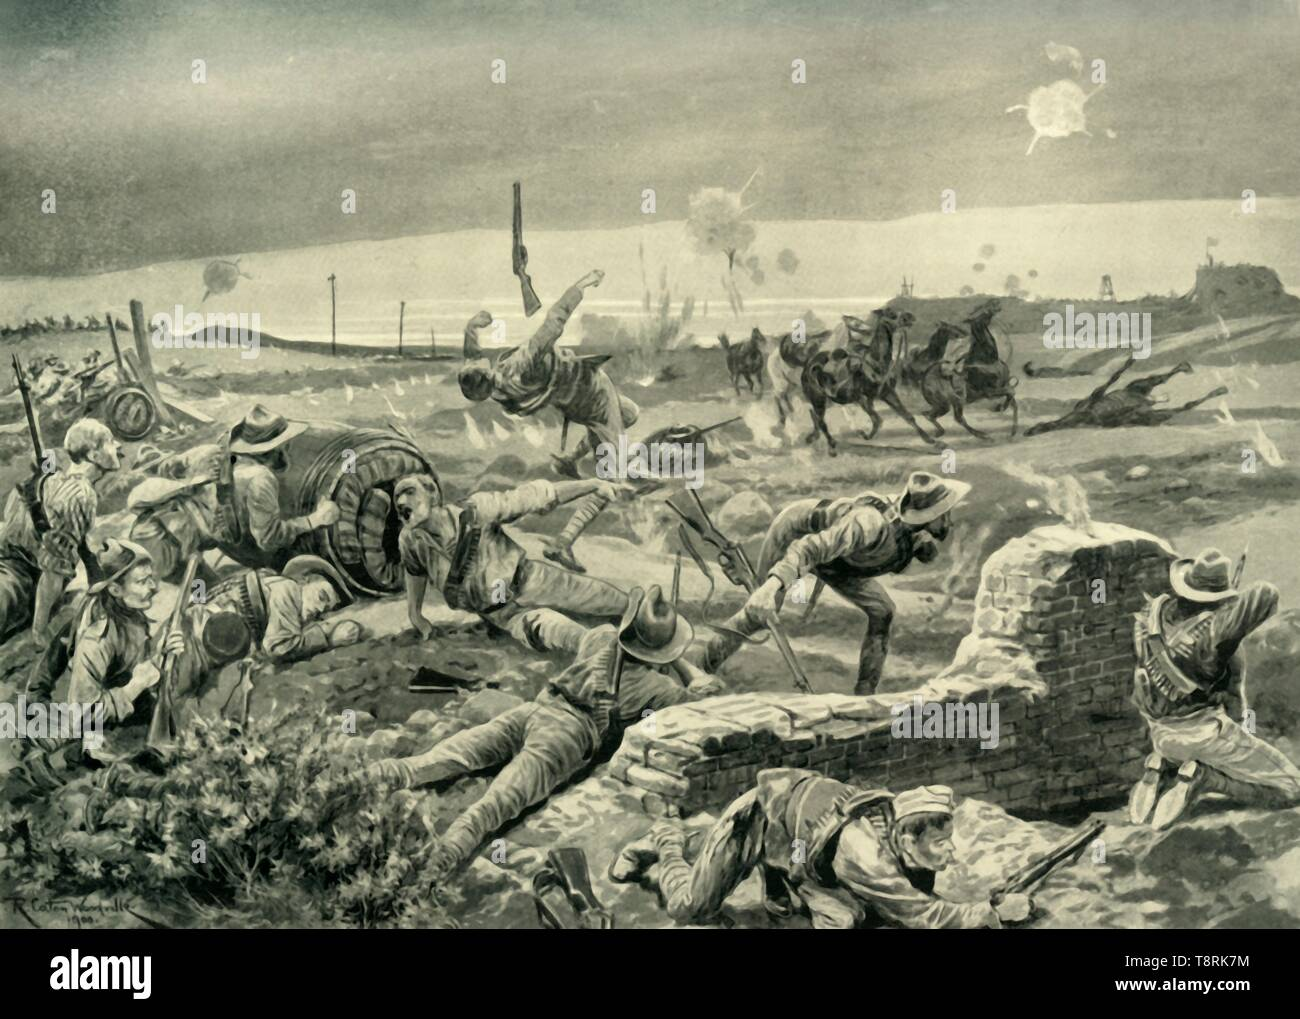 'Mafeking: Eloff's Desperate Attack on the Eve of the Relief', (1901).  Creator: Unknown. - Stock Image